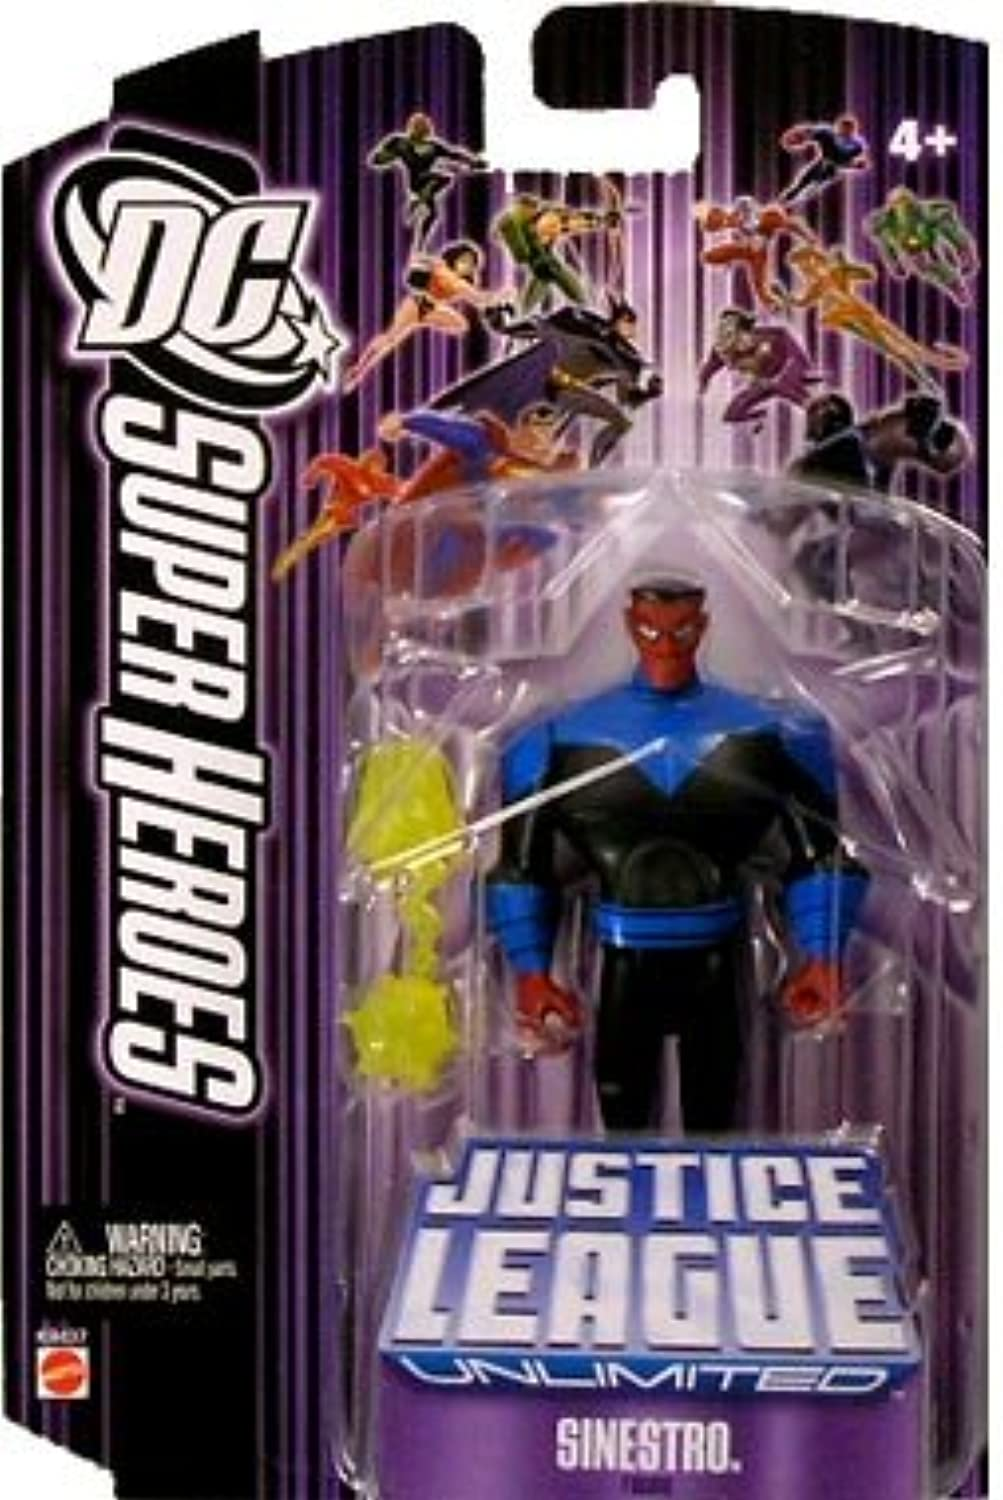 Justice League Unlimited Sinestro Action Figure by Mattel (English Manual)